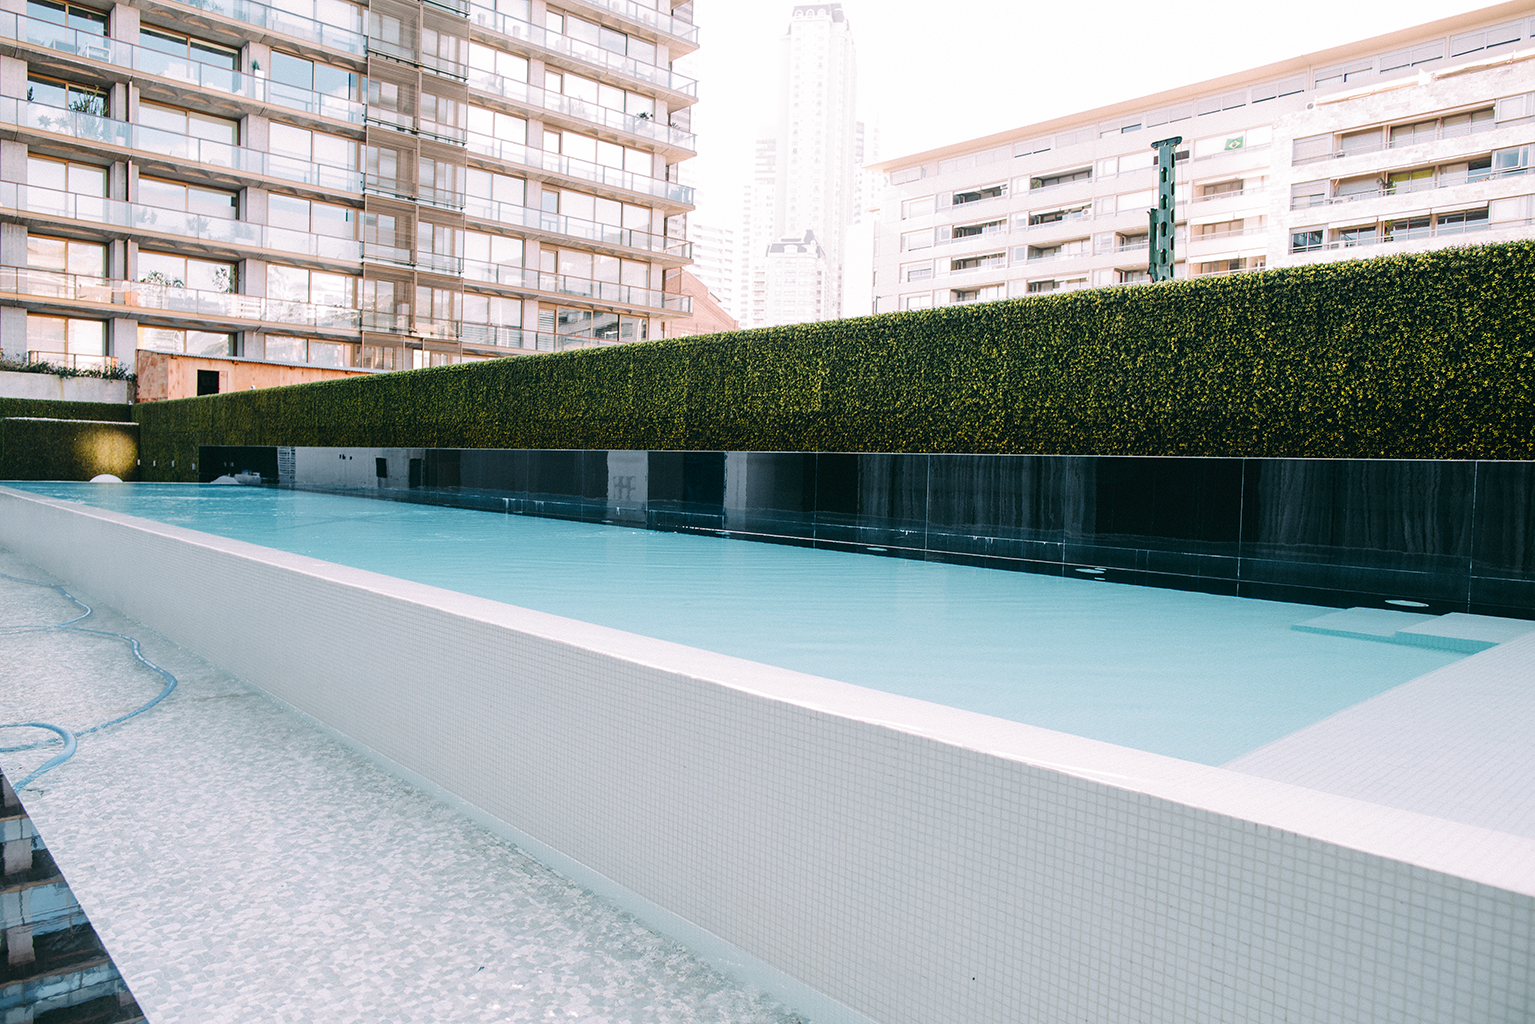 Pool at Lumiere Apartments, Monserrat, Buenos Aires